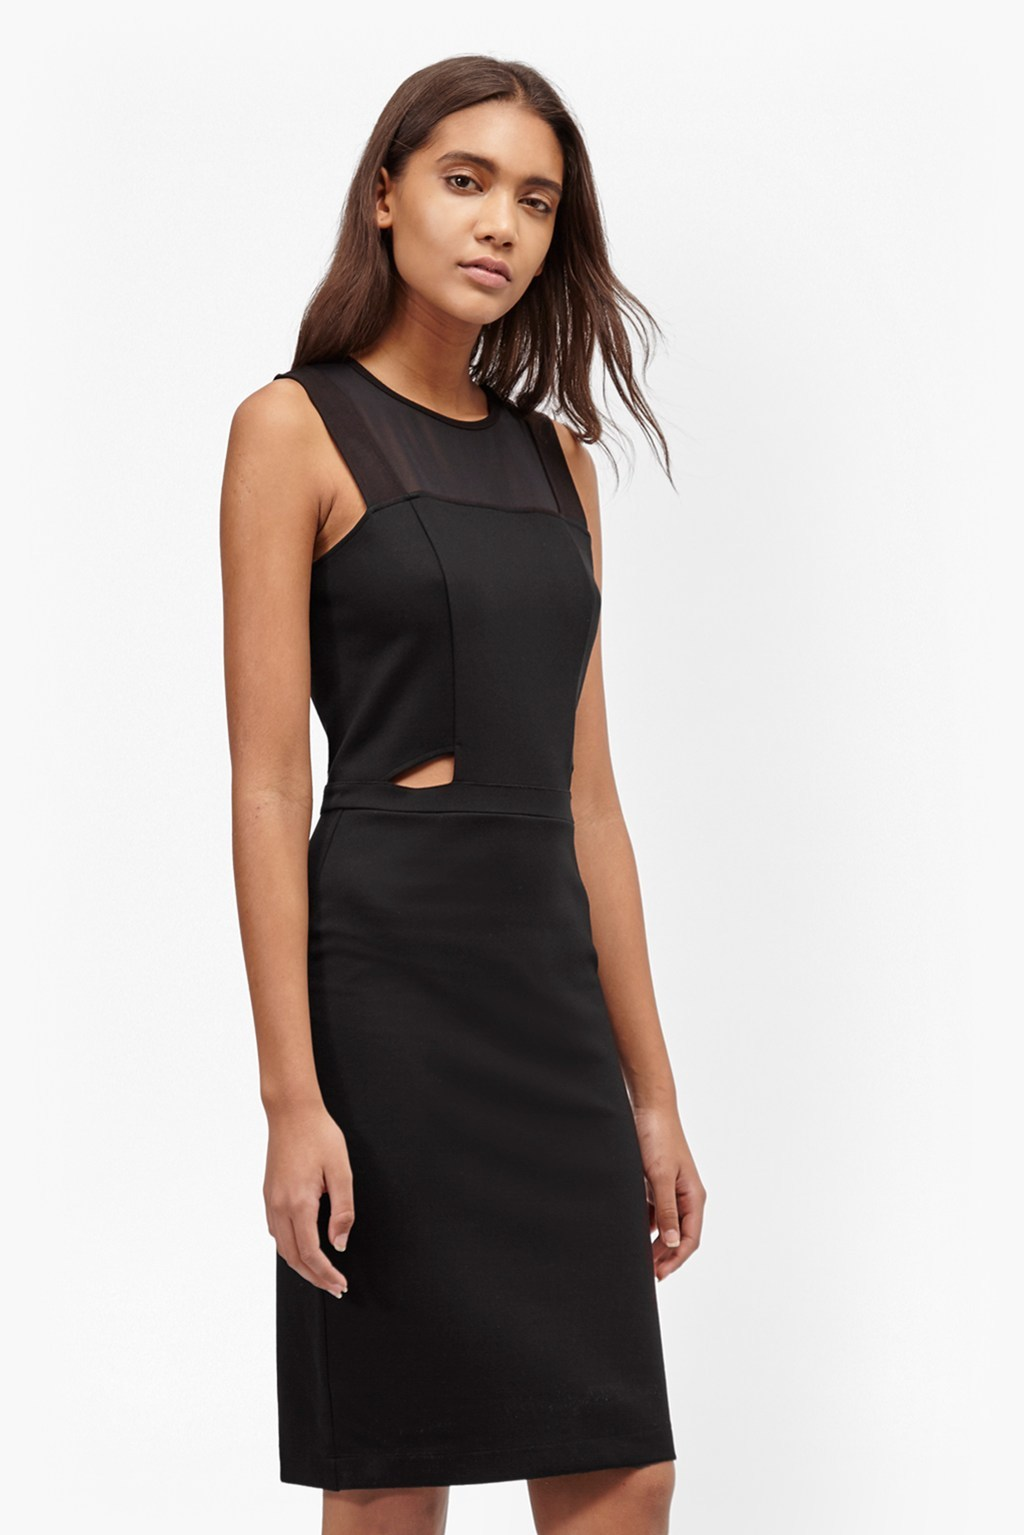 Lula Cut Out Fitted Dress Black - style: shift; fit: tailored/fitted; pattern: plain; sleeve style: sleeveless; predominant colour: black; occasions: evening; length: on the knee; neckline: crew; sleeve length: sleeveless; pattern type: fabric; texture group: jersey - stretchy/drapey; fibres: viscose/rayon - mix; season: s/s 2016; wardrobe: event